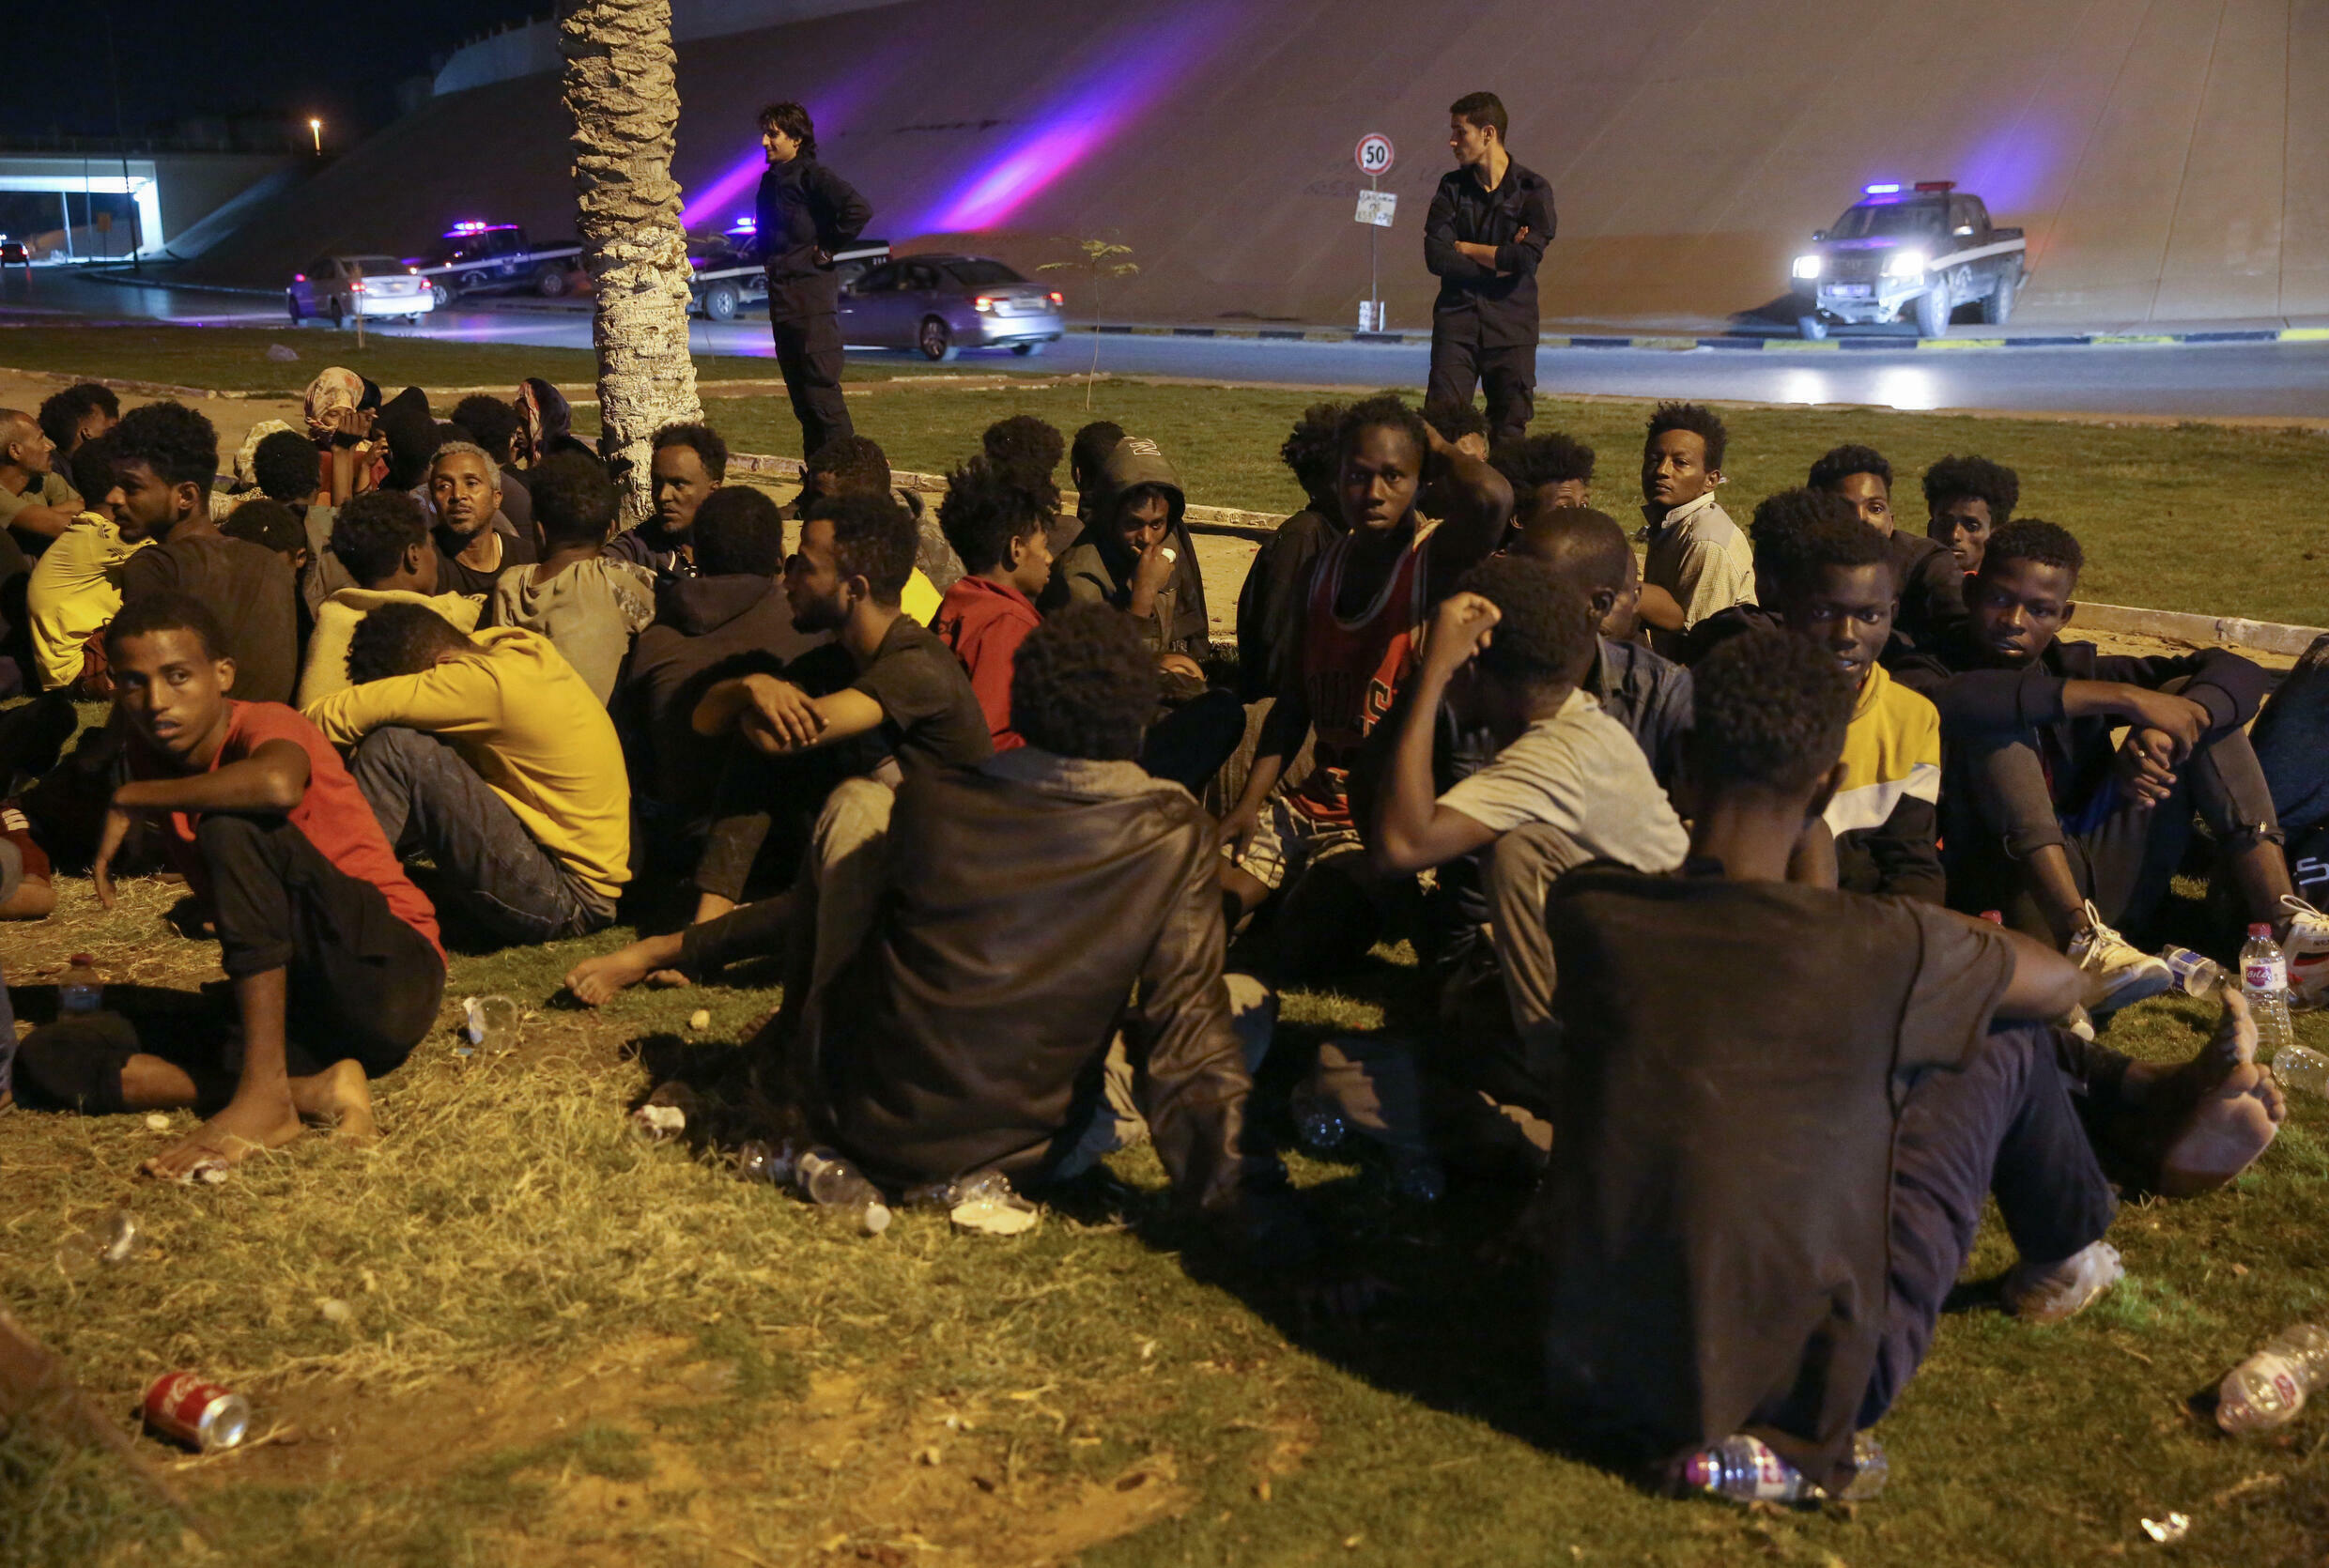 Libyan authorities round up migrants who attempted to join a mass breakout from an overcrowded Tripoli detention centre after guards shot dead six inmates